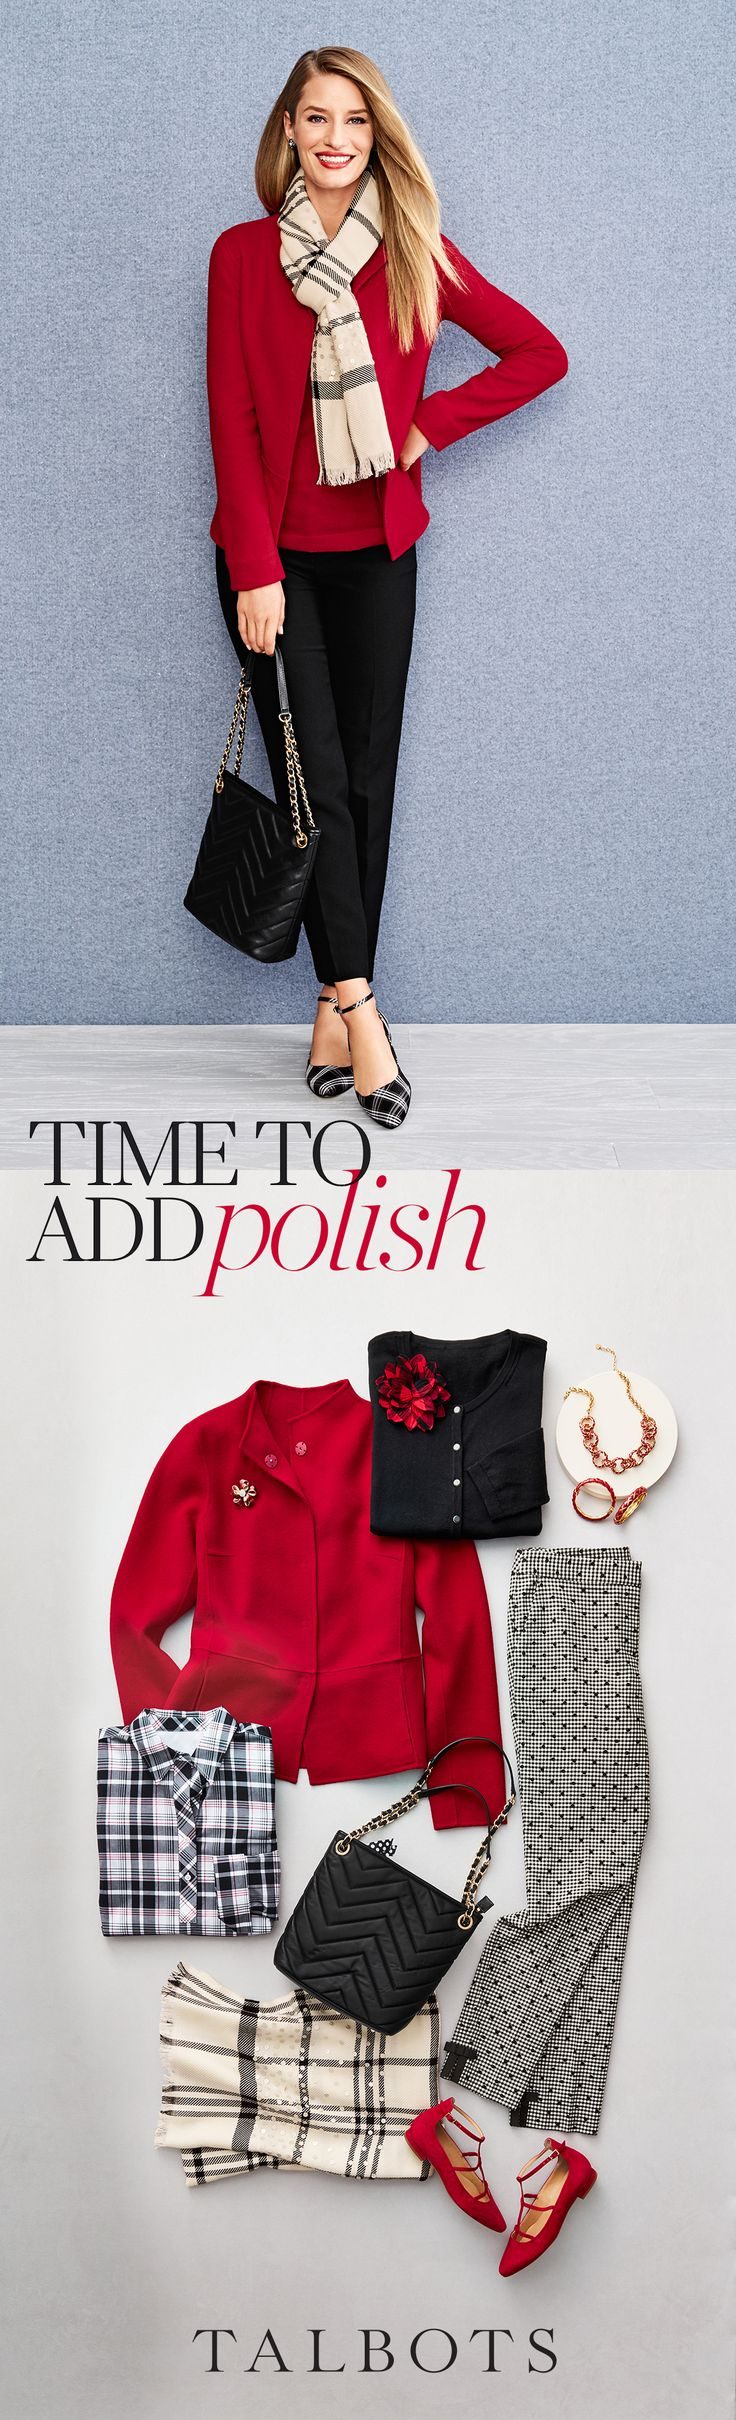 Black, white, luxe details, and a punch of color are easy and newsworthy for work events, family gatherings and beyond. Top off the look with some  sparkle and a classic handbag. Shop these looks and more exclusively at Talbots.